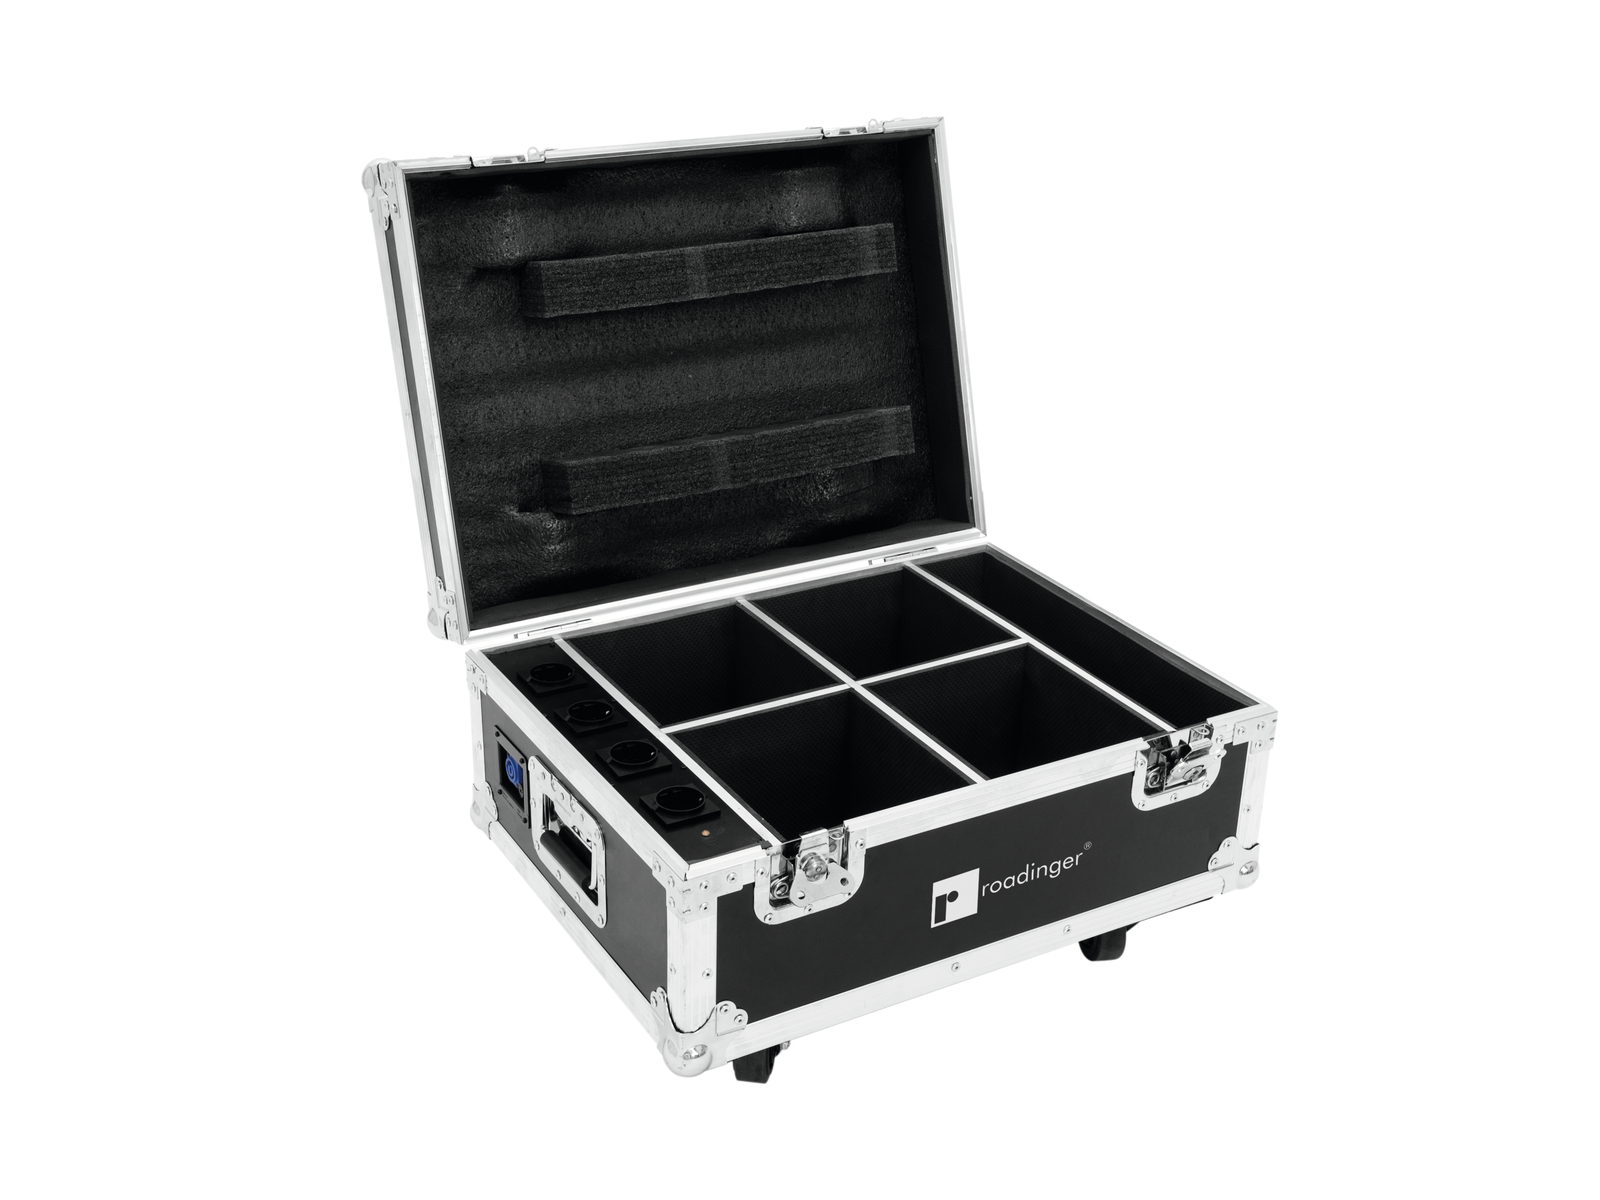 ROADINGER Flightcase 4x AKKU UP-4 QuickDMX con la carica di distri